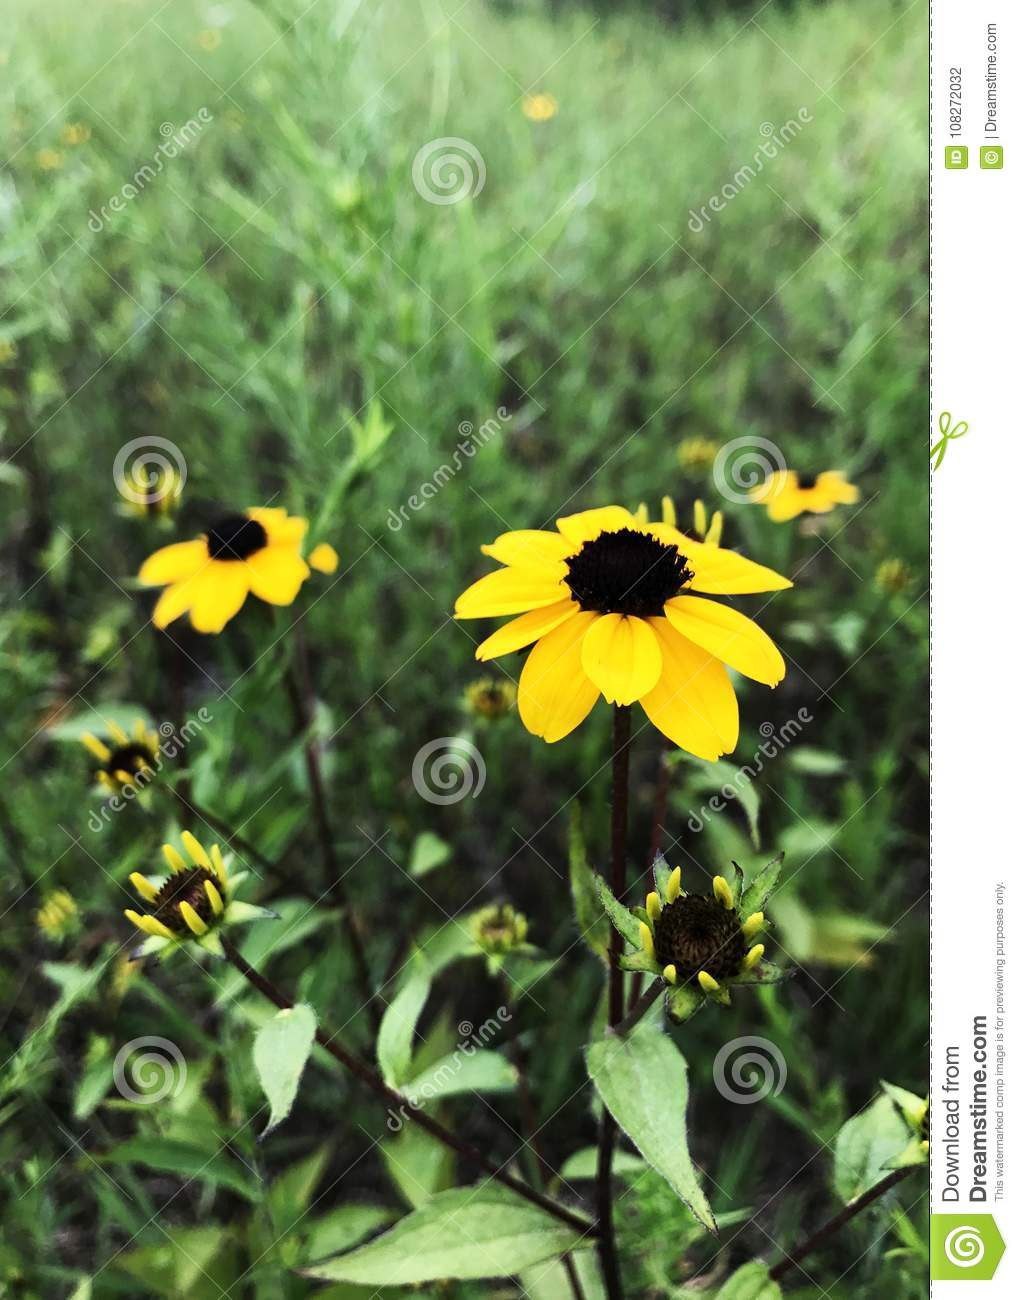 Yellow flowers standing tall in the long grass stock photo image yellow flowers standing tall in the long grass mightylinksfo